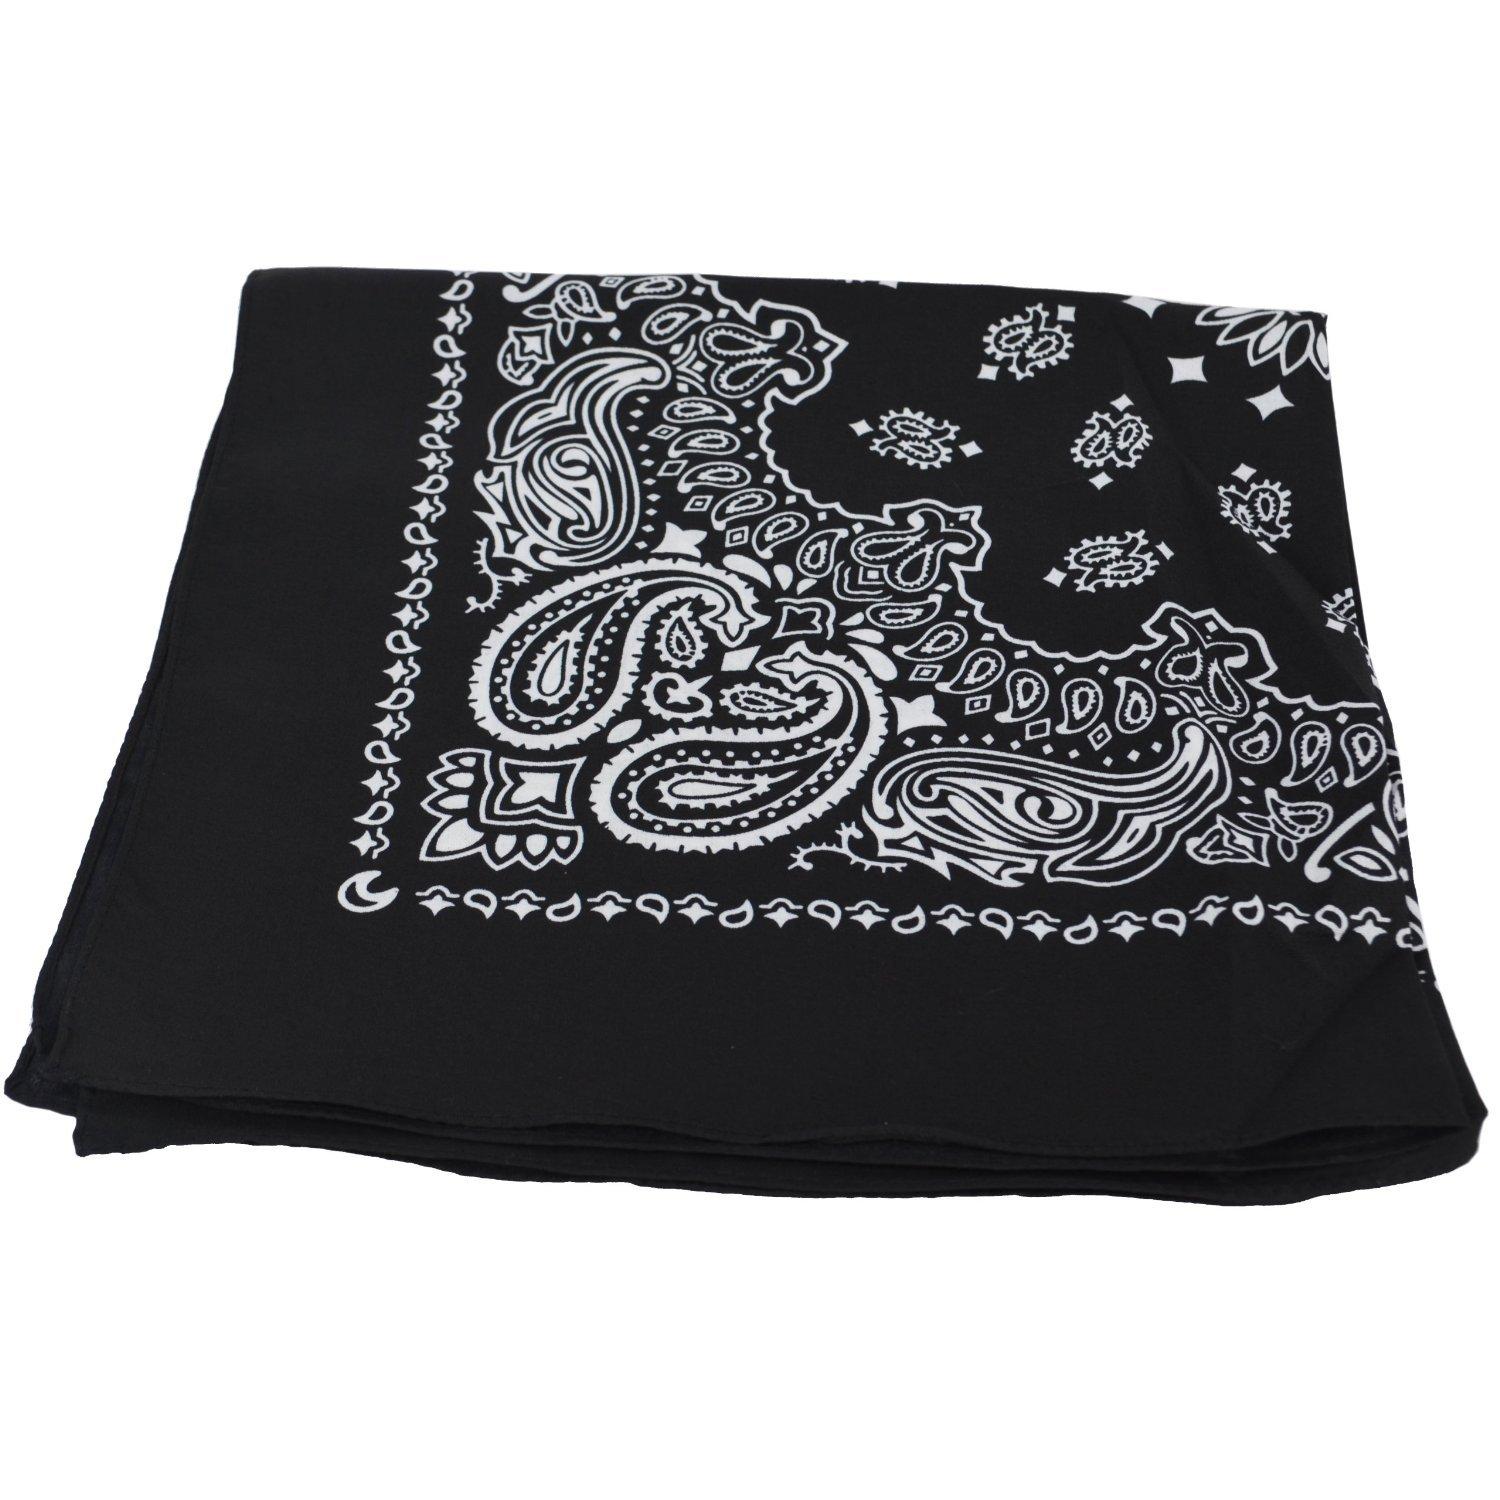 2X BLACK Bandana with WHITE square Paisley pattern ON BOTH SIDES